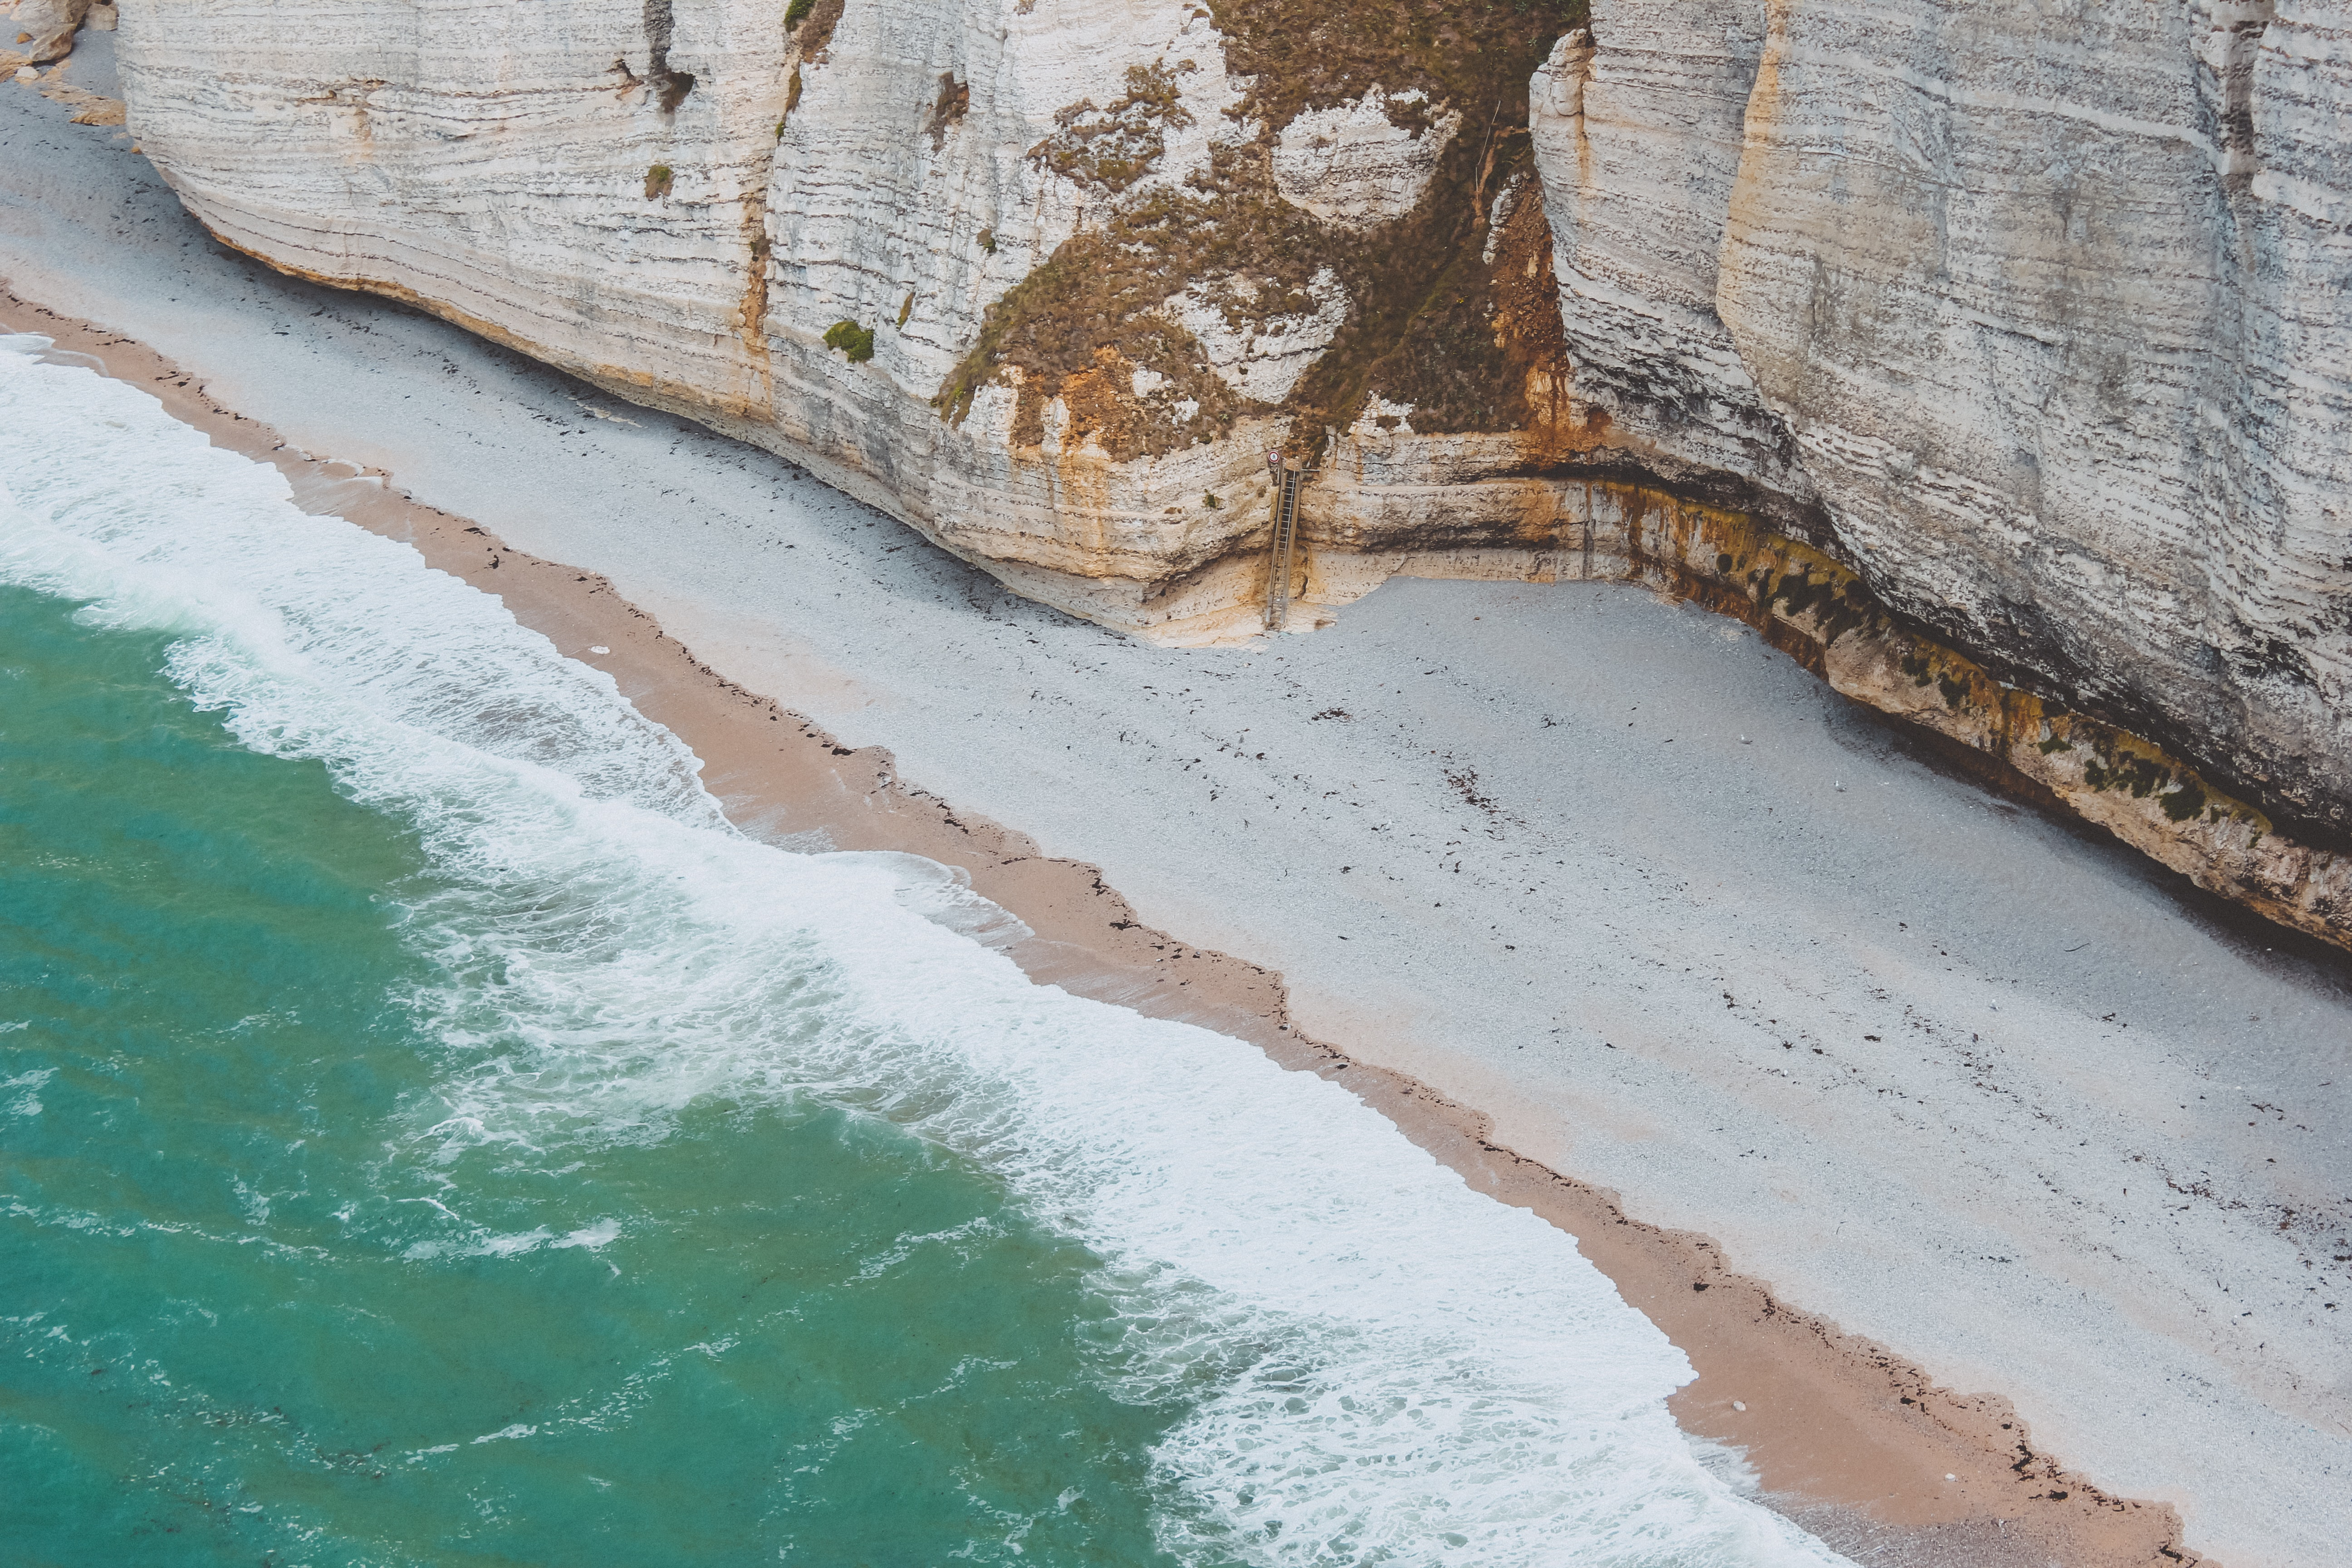 bird's eye view photo of seashore beside cliff